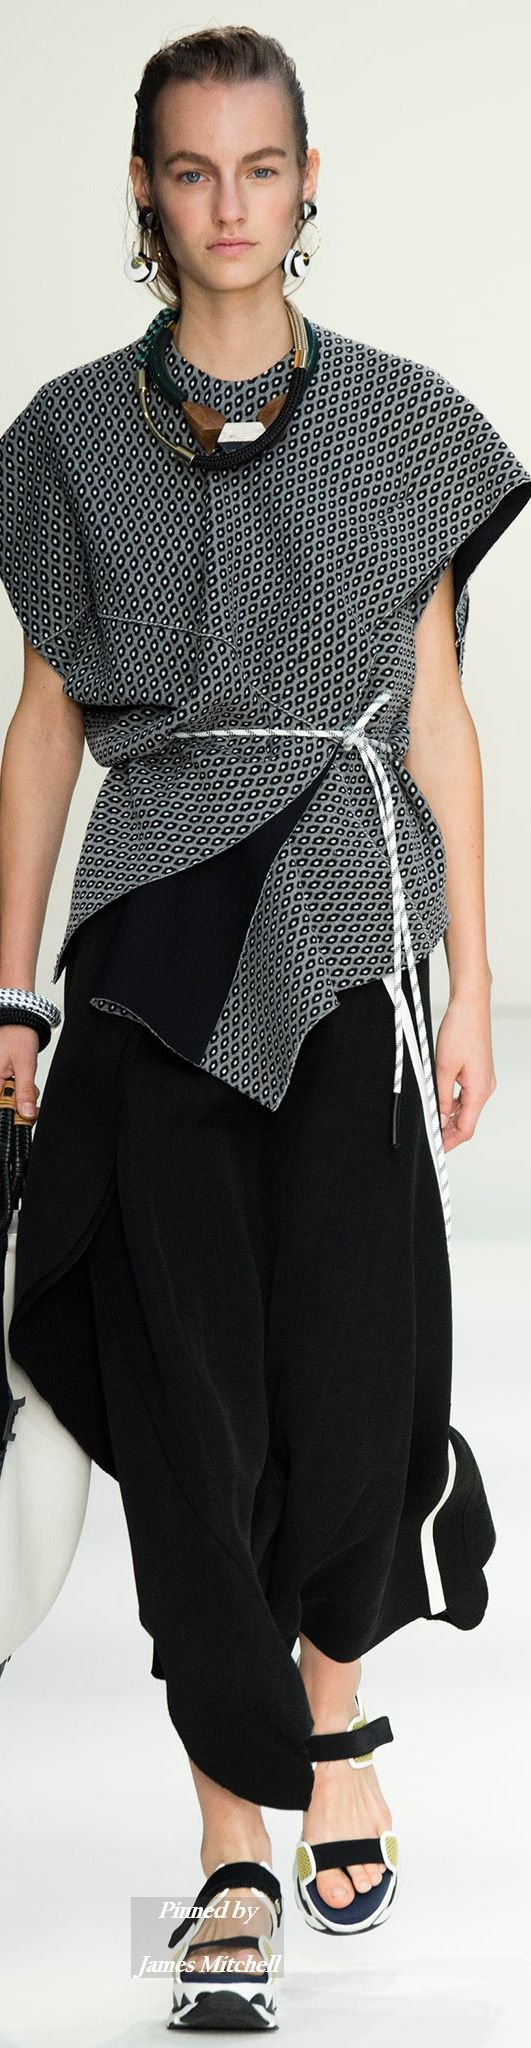 Marni Collection Spring 2015 Ready-to-Wear